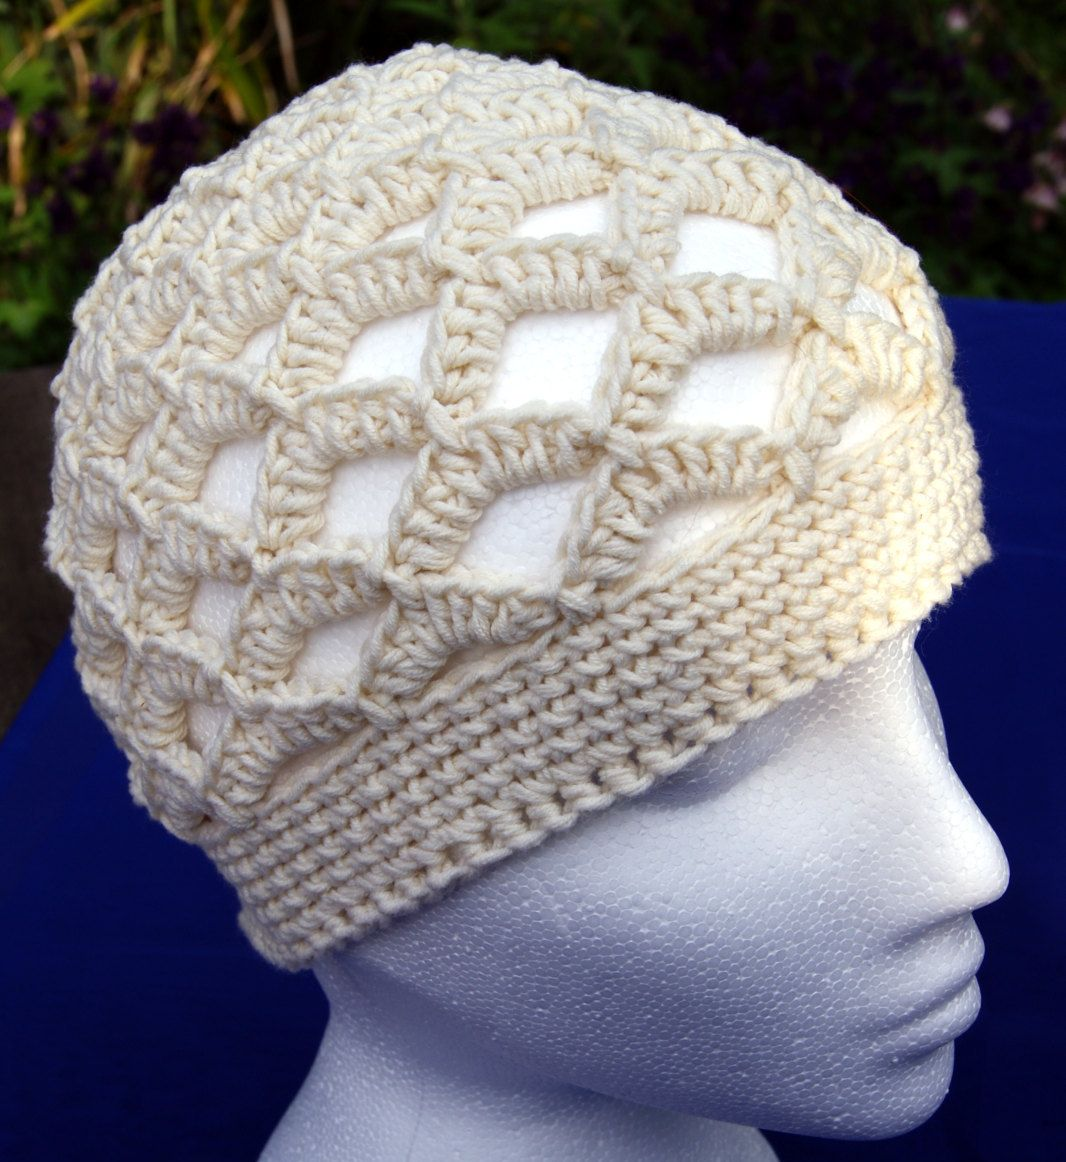 Hand crochet retro style beanie hat in fresh cream scalloped hand crochet retro style beanie hat in fresh cream beach kufi hat by lambswoolwares on etsy bankloansurffo Choice Image